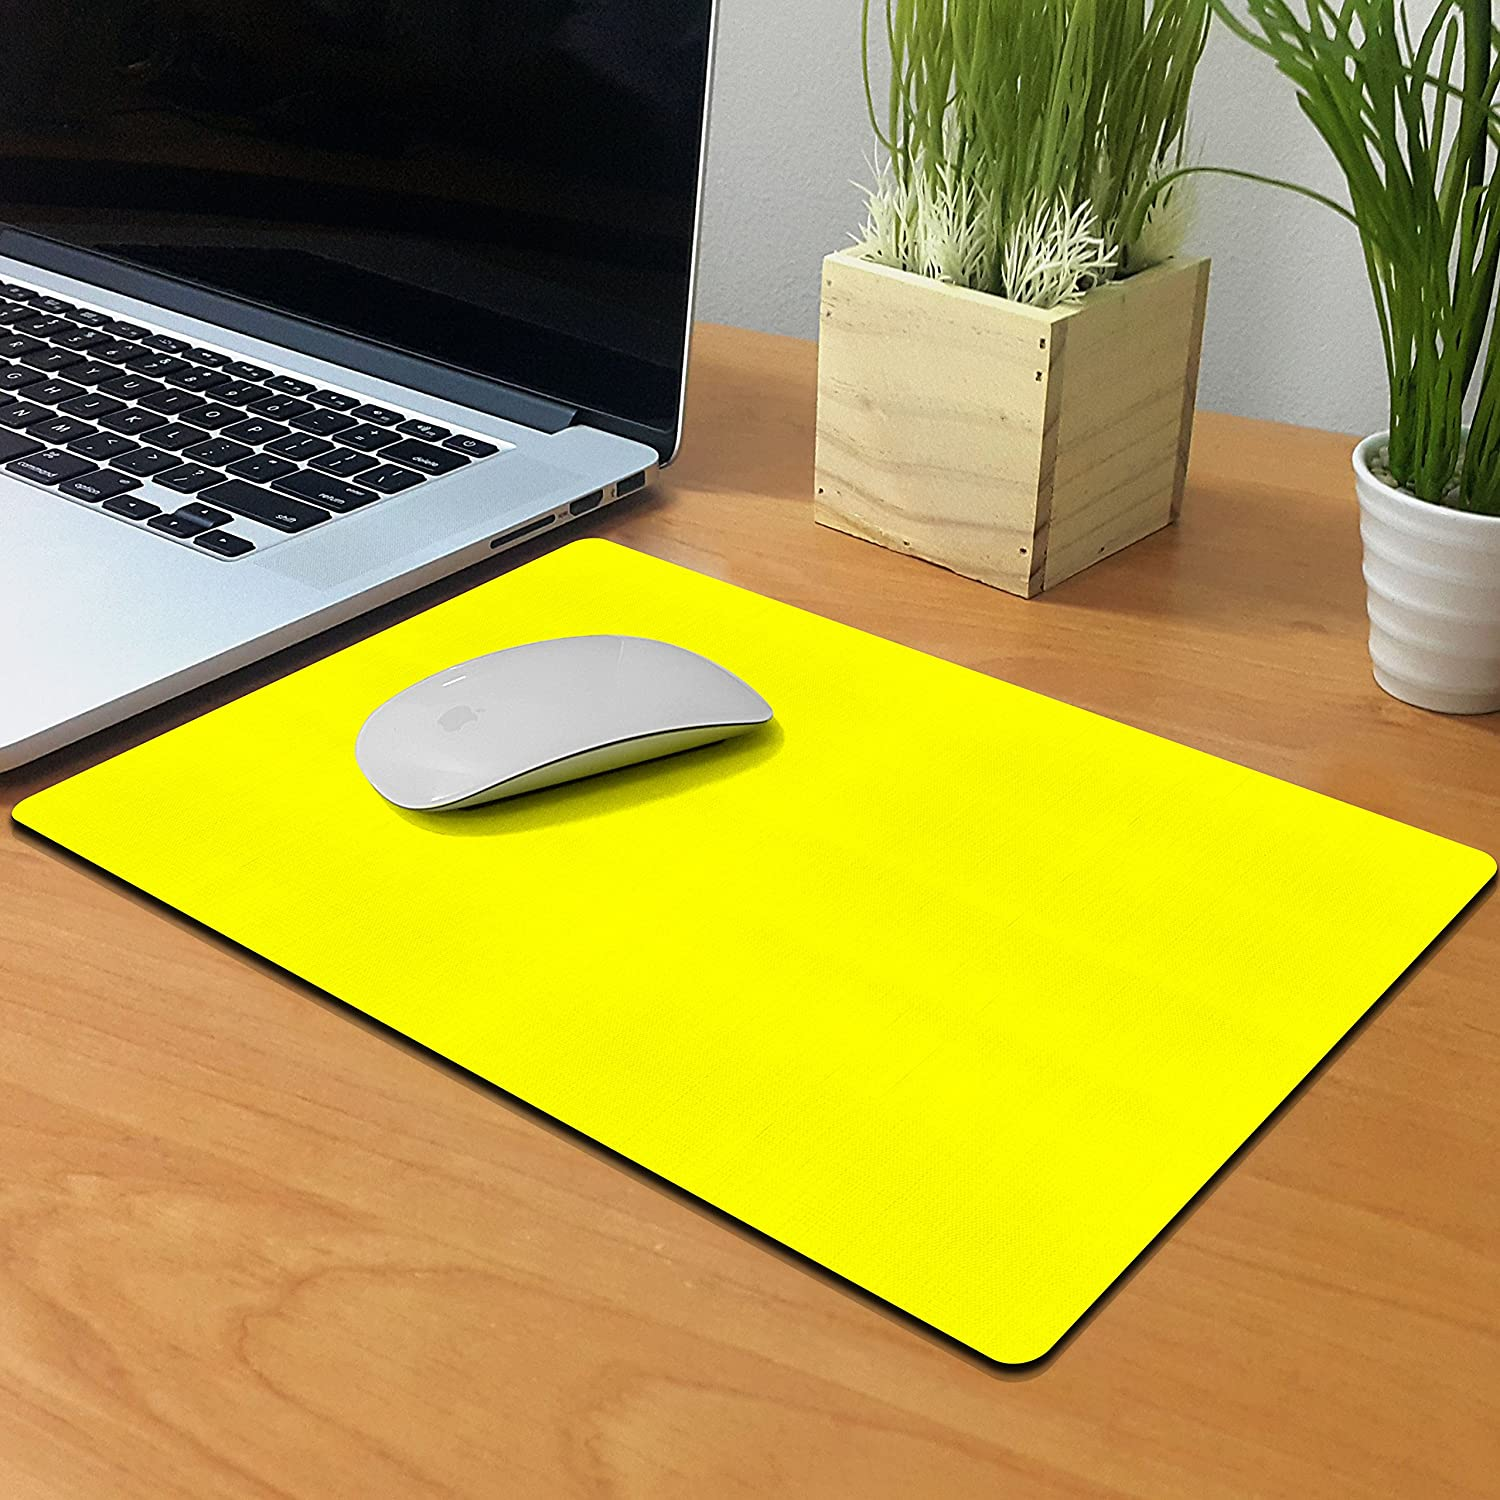 X-Large Size Non-Slip Rectangle Mousepad Extra Large Office and Gaming Desk FINCIBO Solid Hot Pink Mouse Pad for Home